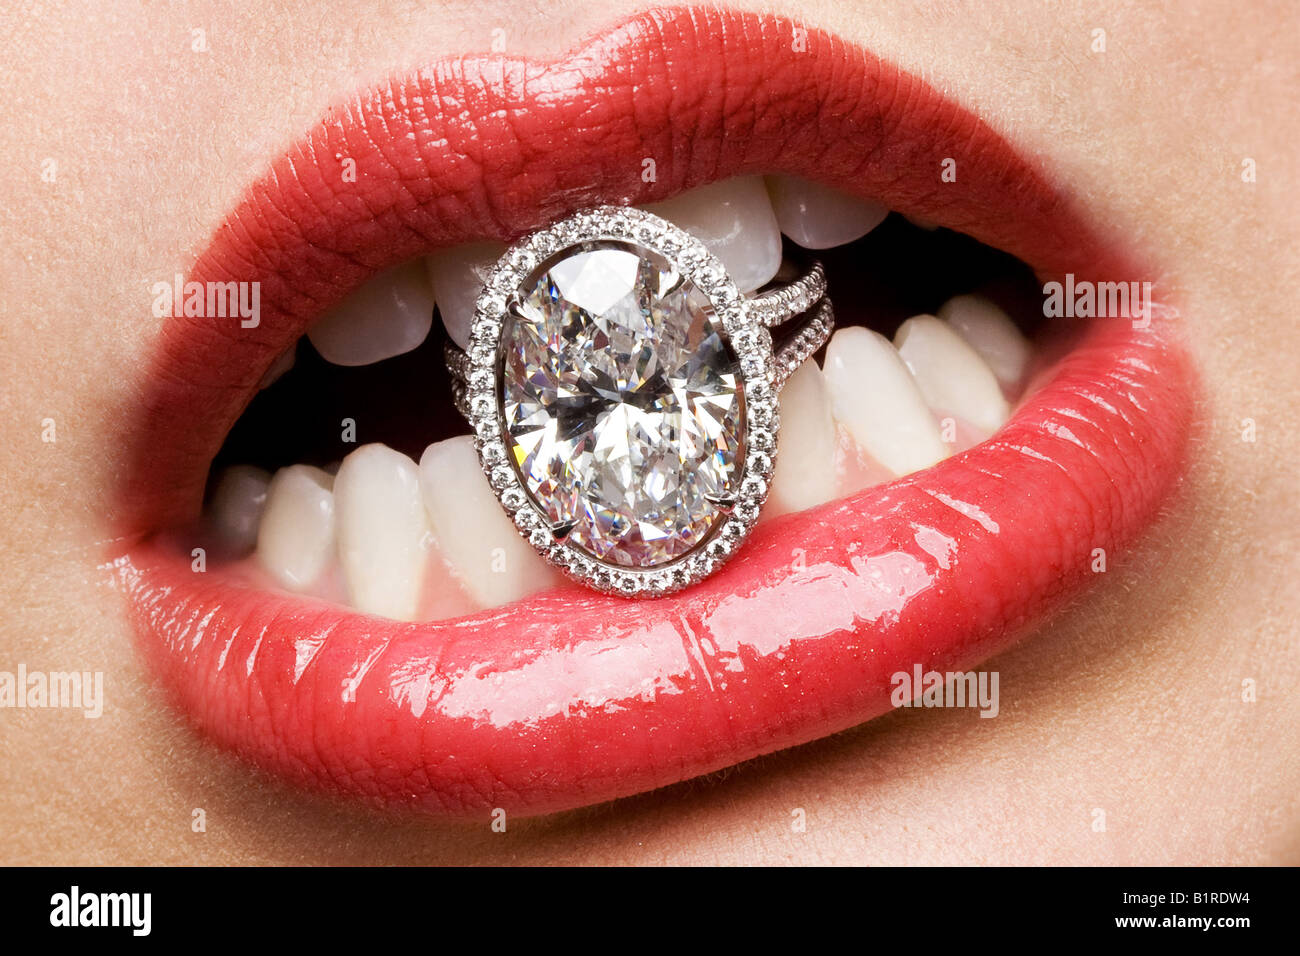 A womans mouth holding a giant diamond ring with her teeth. - Stock Image